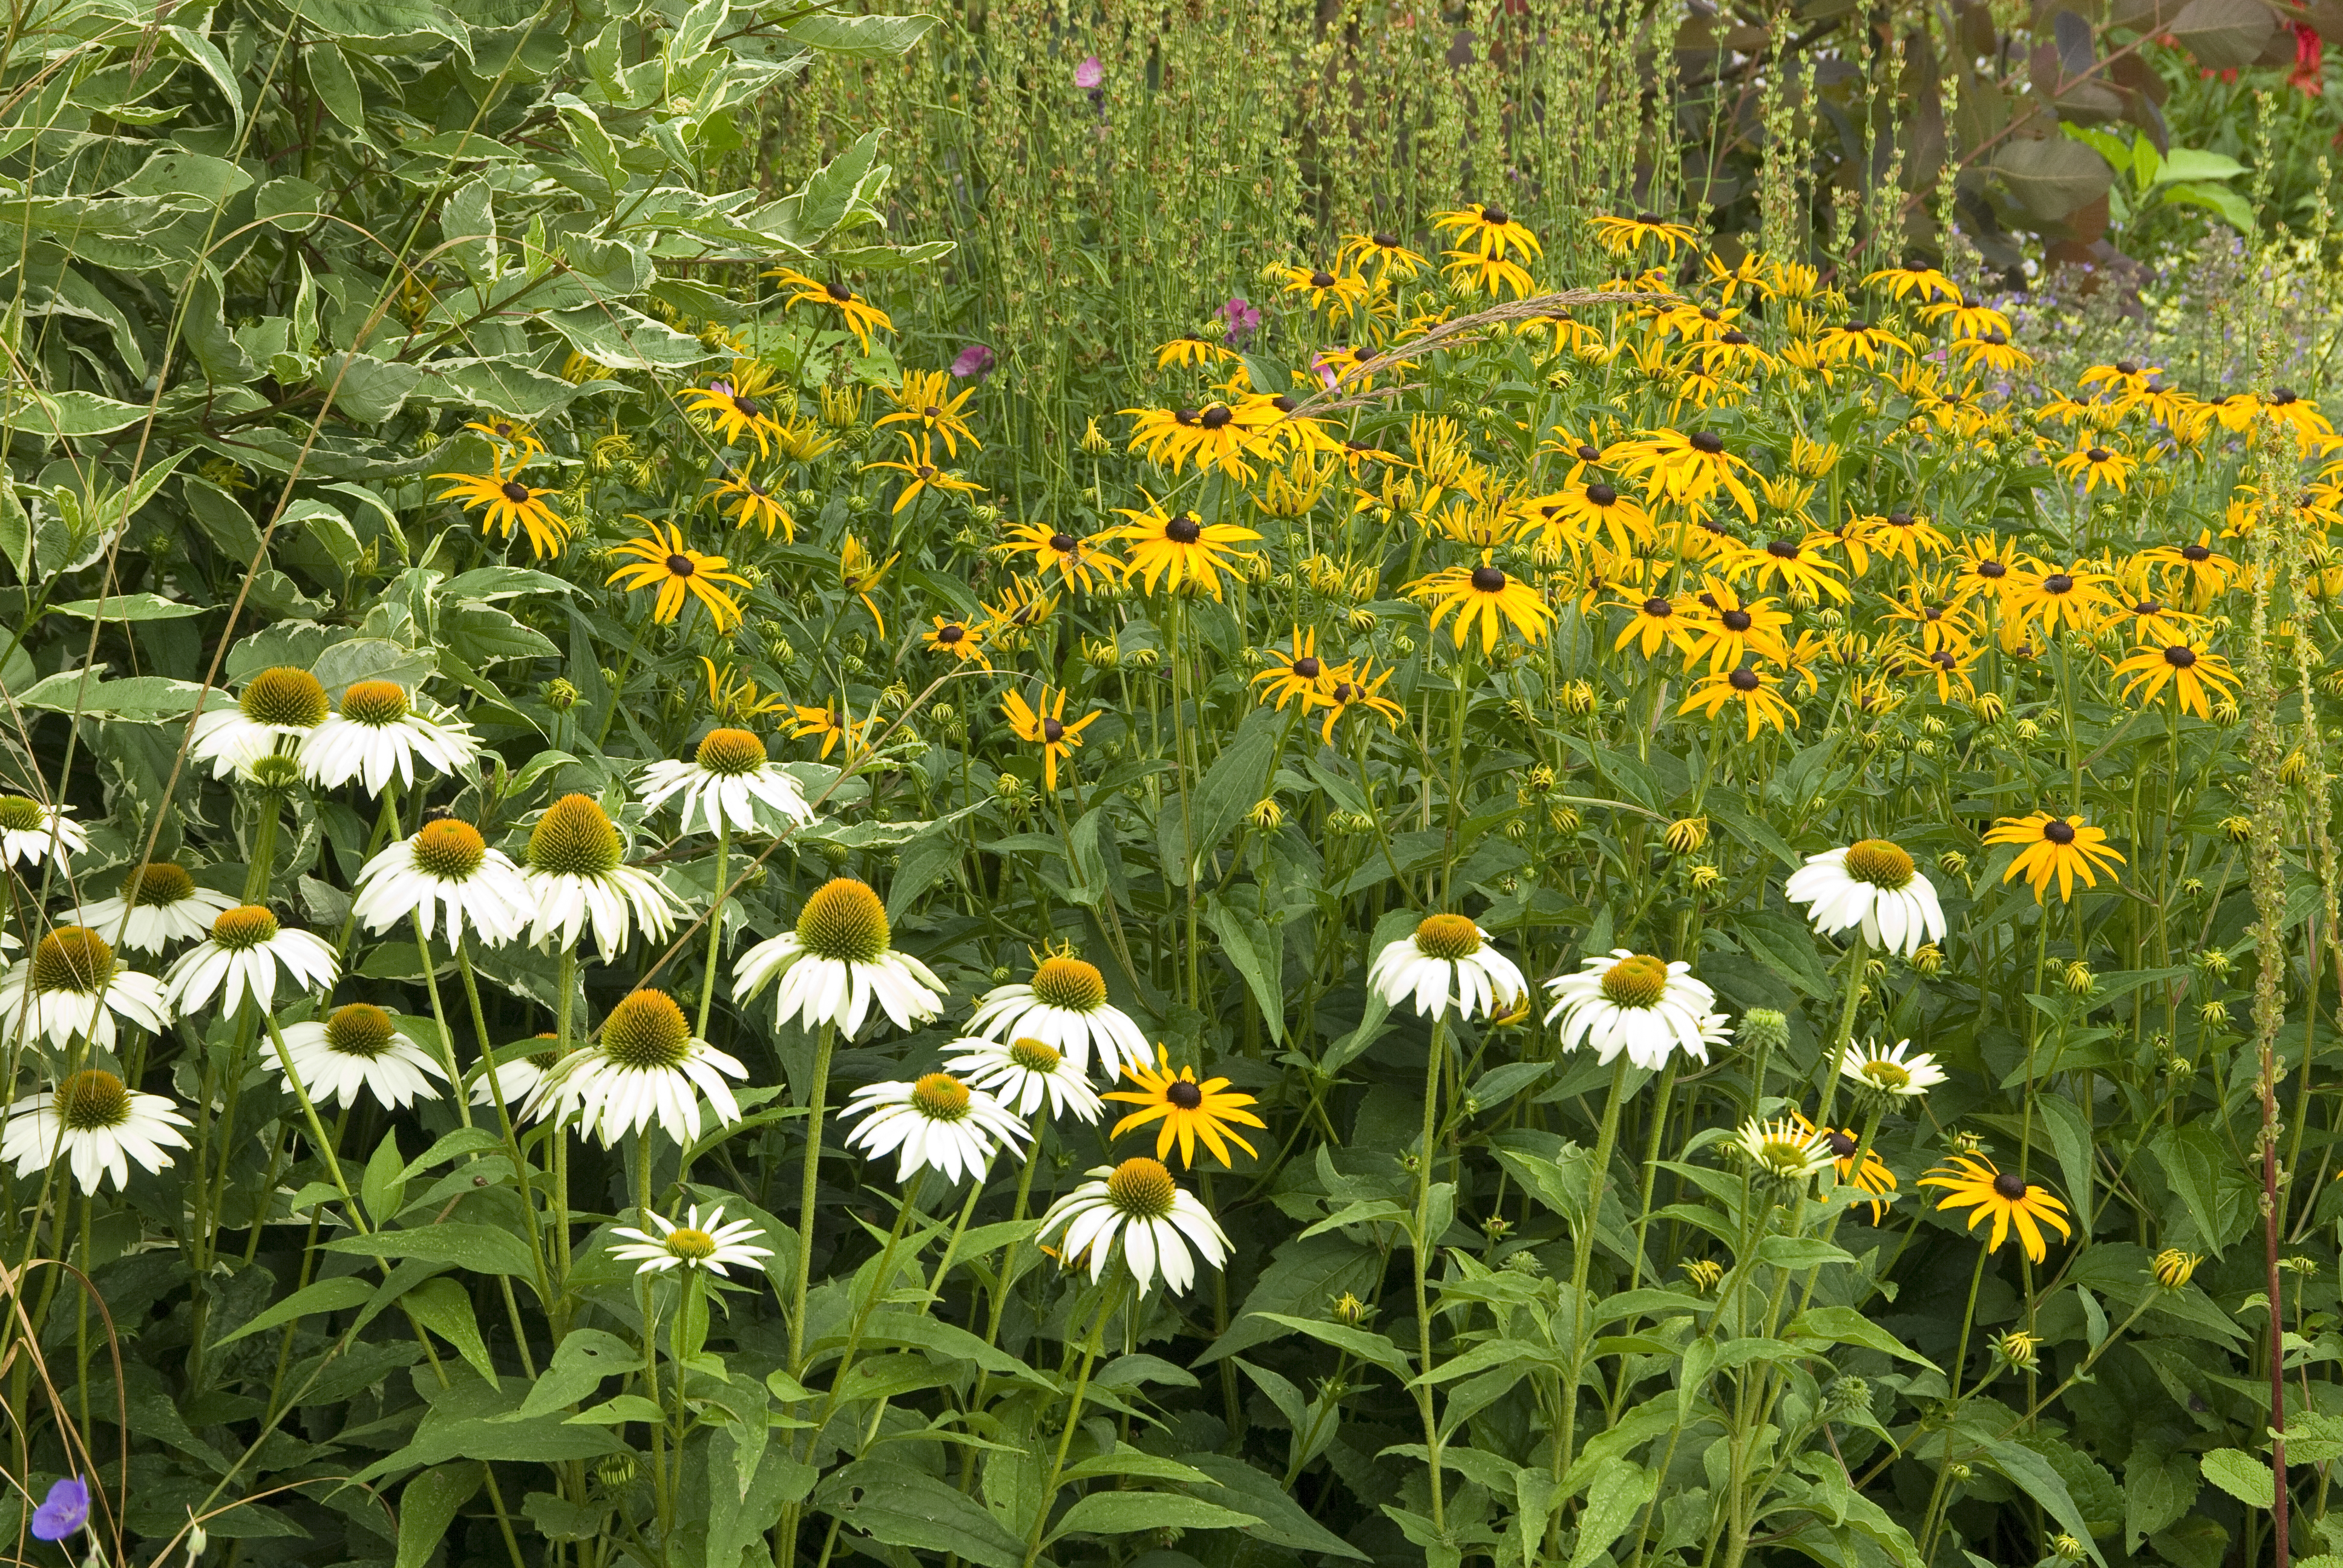 Native plants for autumn interest white flower farms blog the white flowering coneflower echinacea purpurea white swan and rudbeckia fulgida sullivantii goldsturm are both improved natives and theyre both mightylinksfo